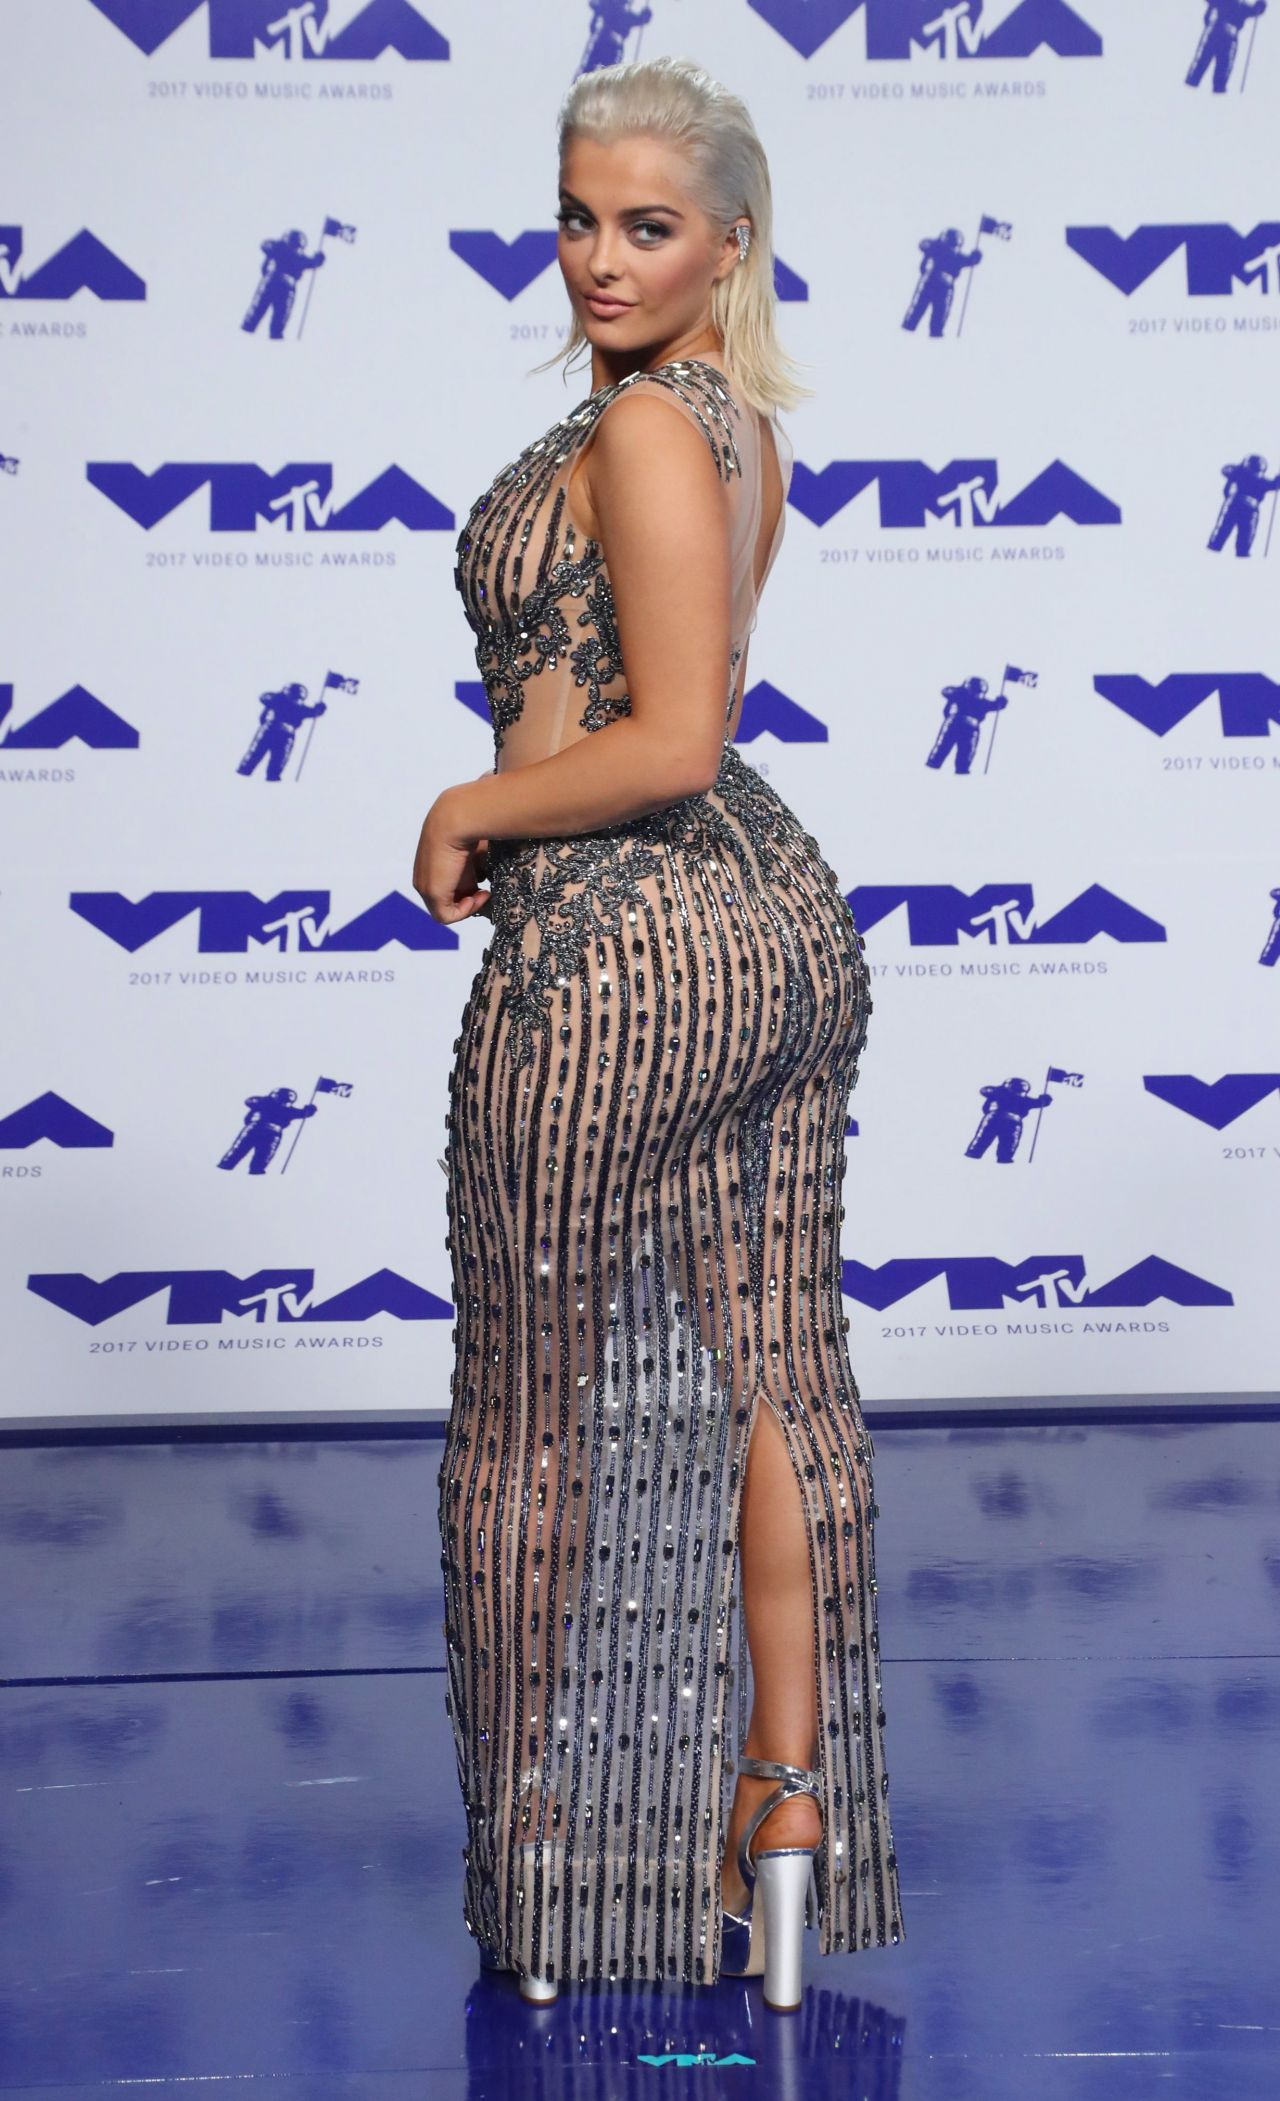 Bebe Rexha Mtv Video Music Awards In Los Angeles 08 27 2017